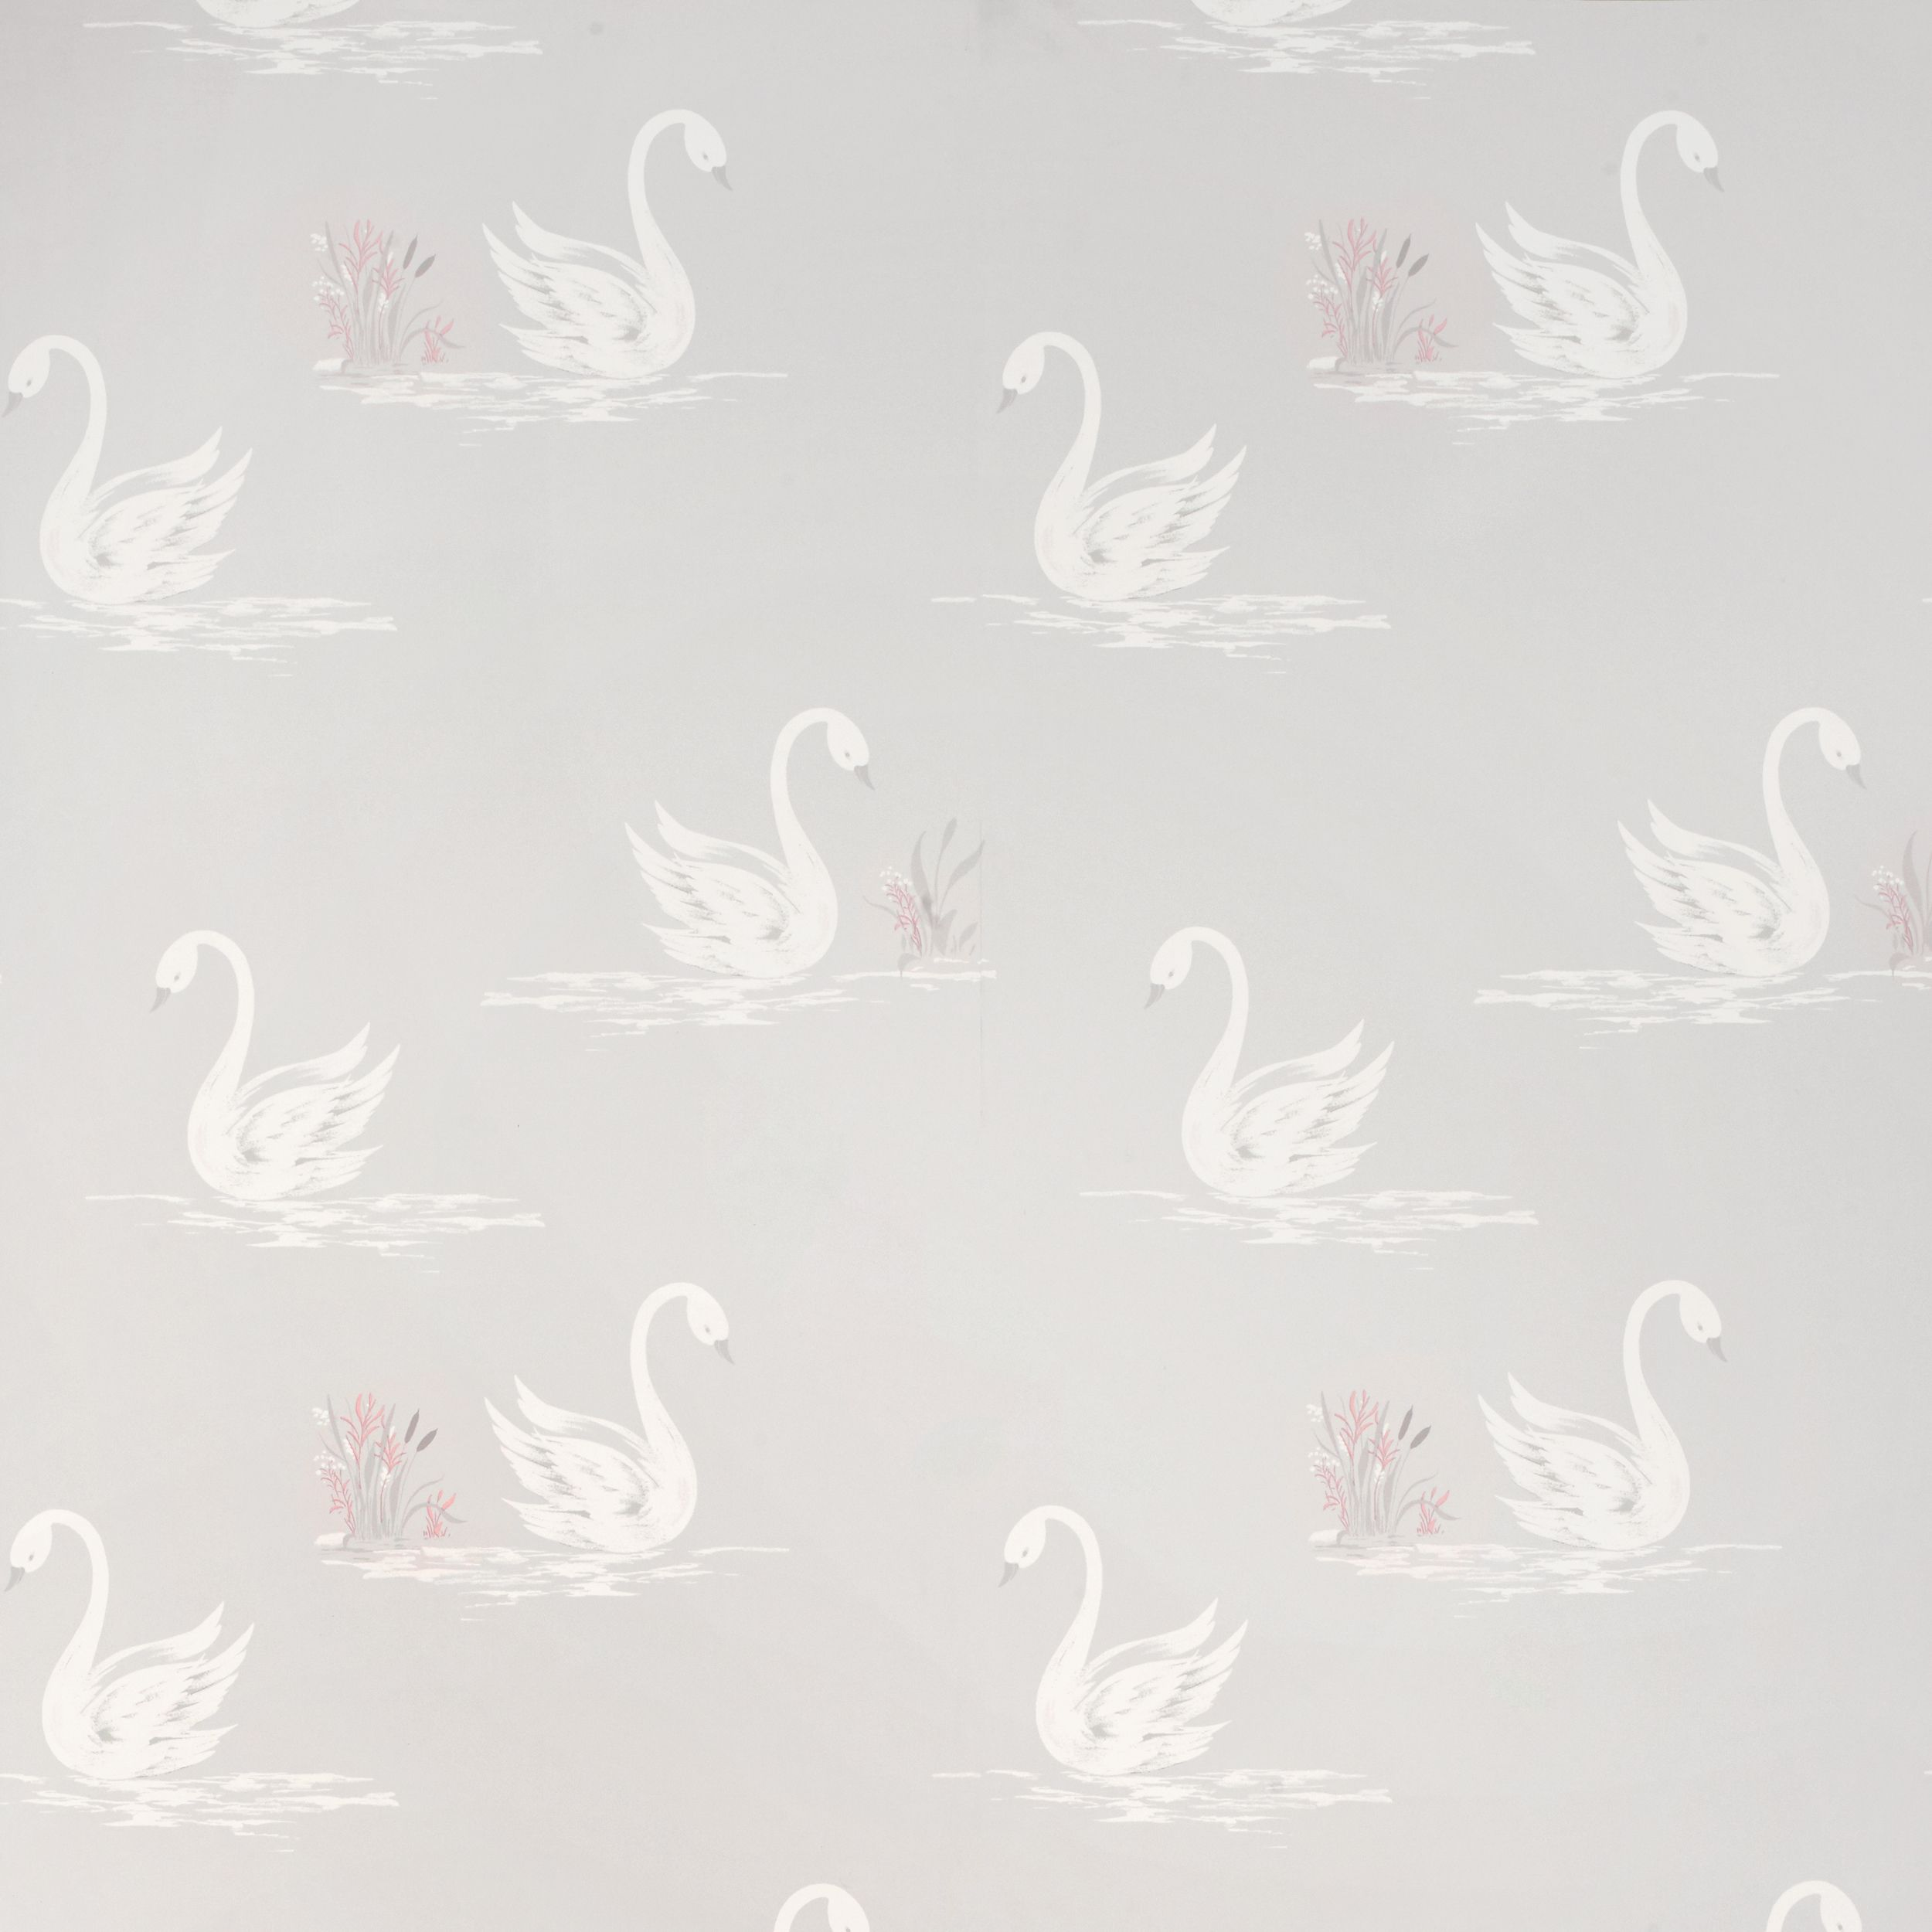 Silver Wallpaper For Bedroom Laura Ashley Swans Silver Wallpaper Home Pinterest Swans